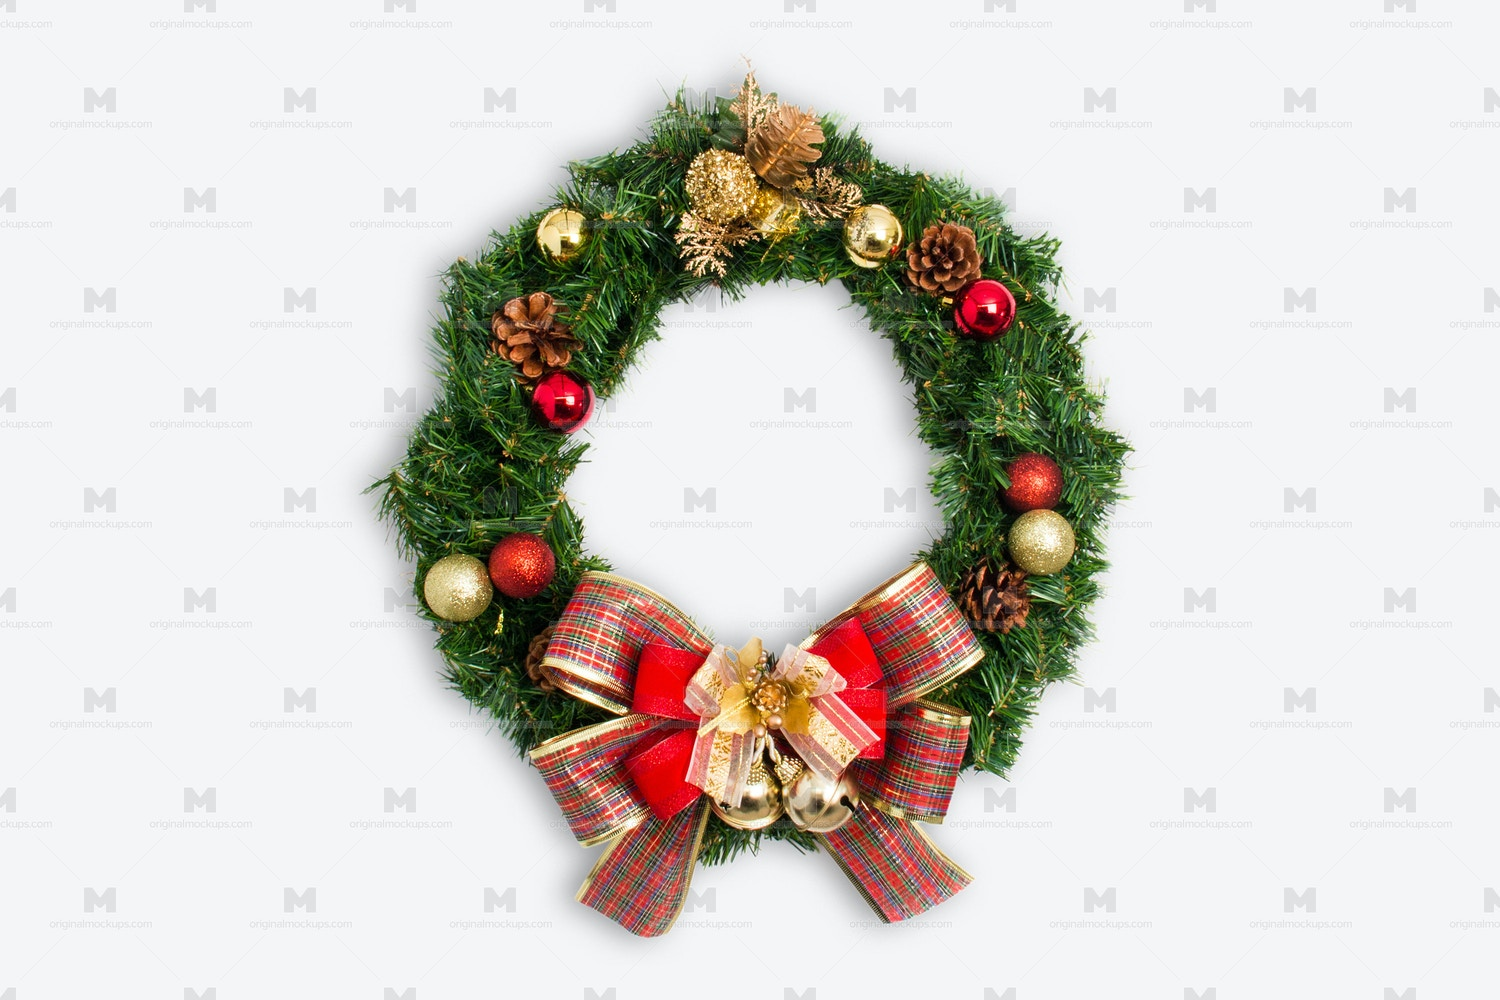 Christmas Wreath Isolate 01 por Original Mockups en Original Mockups